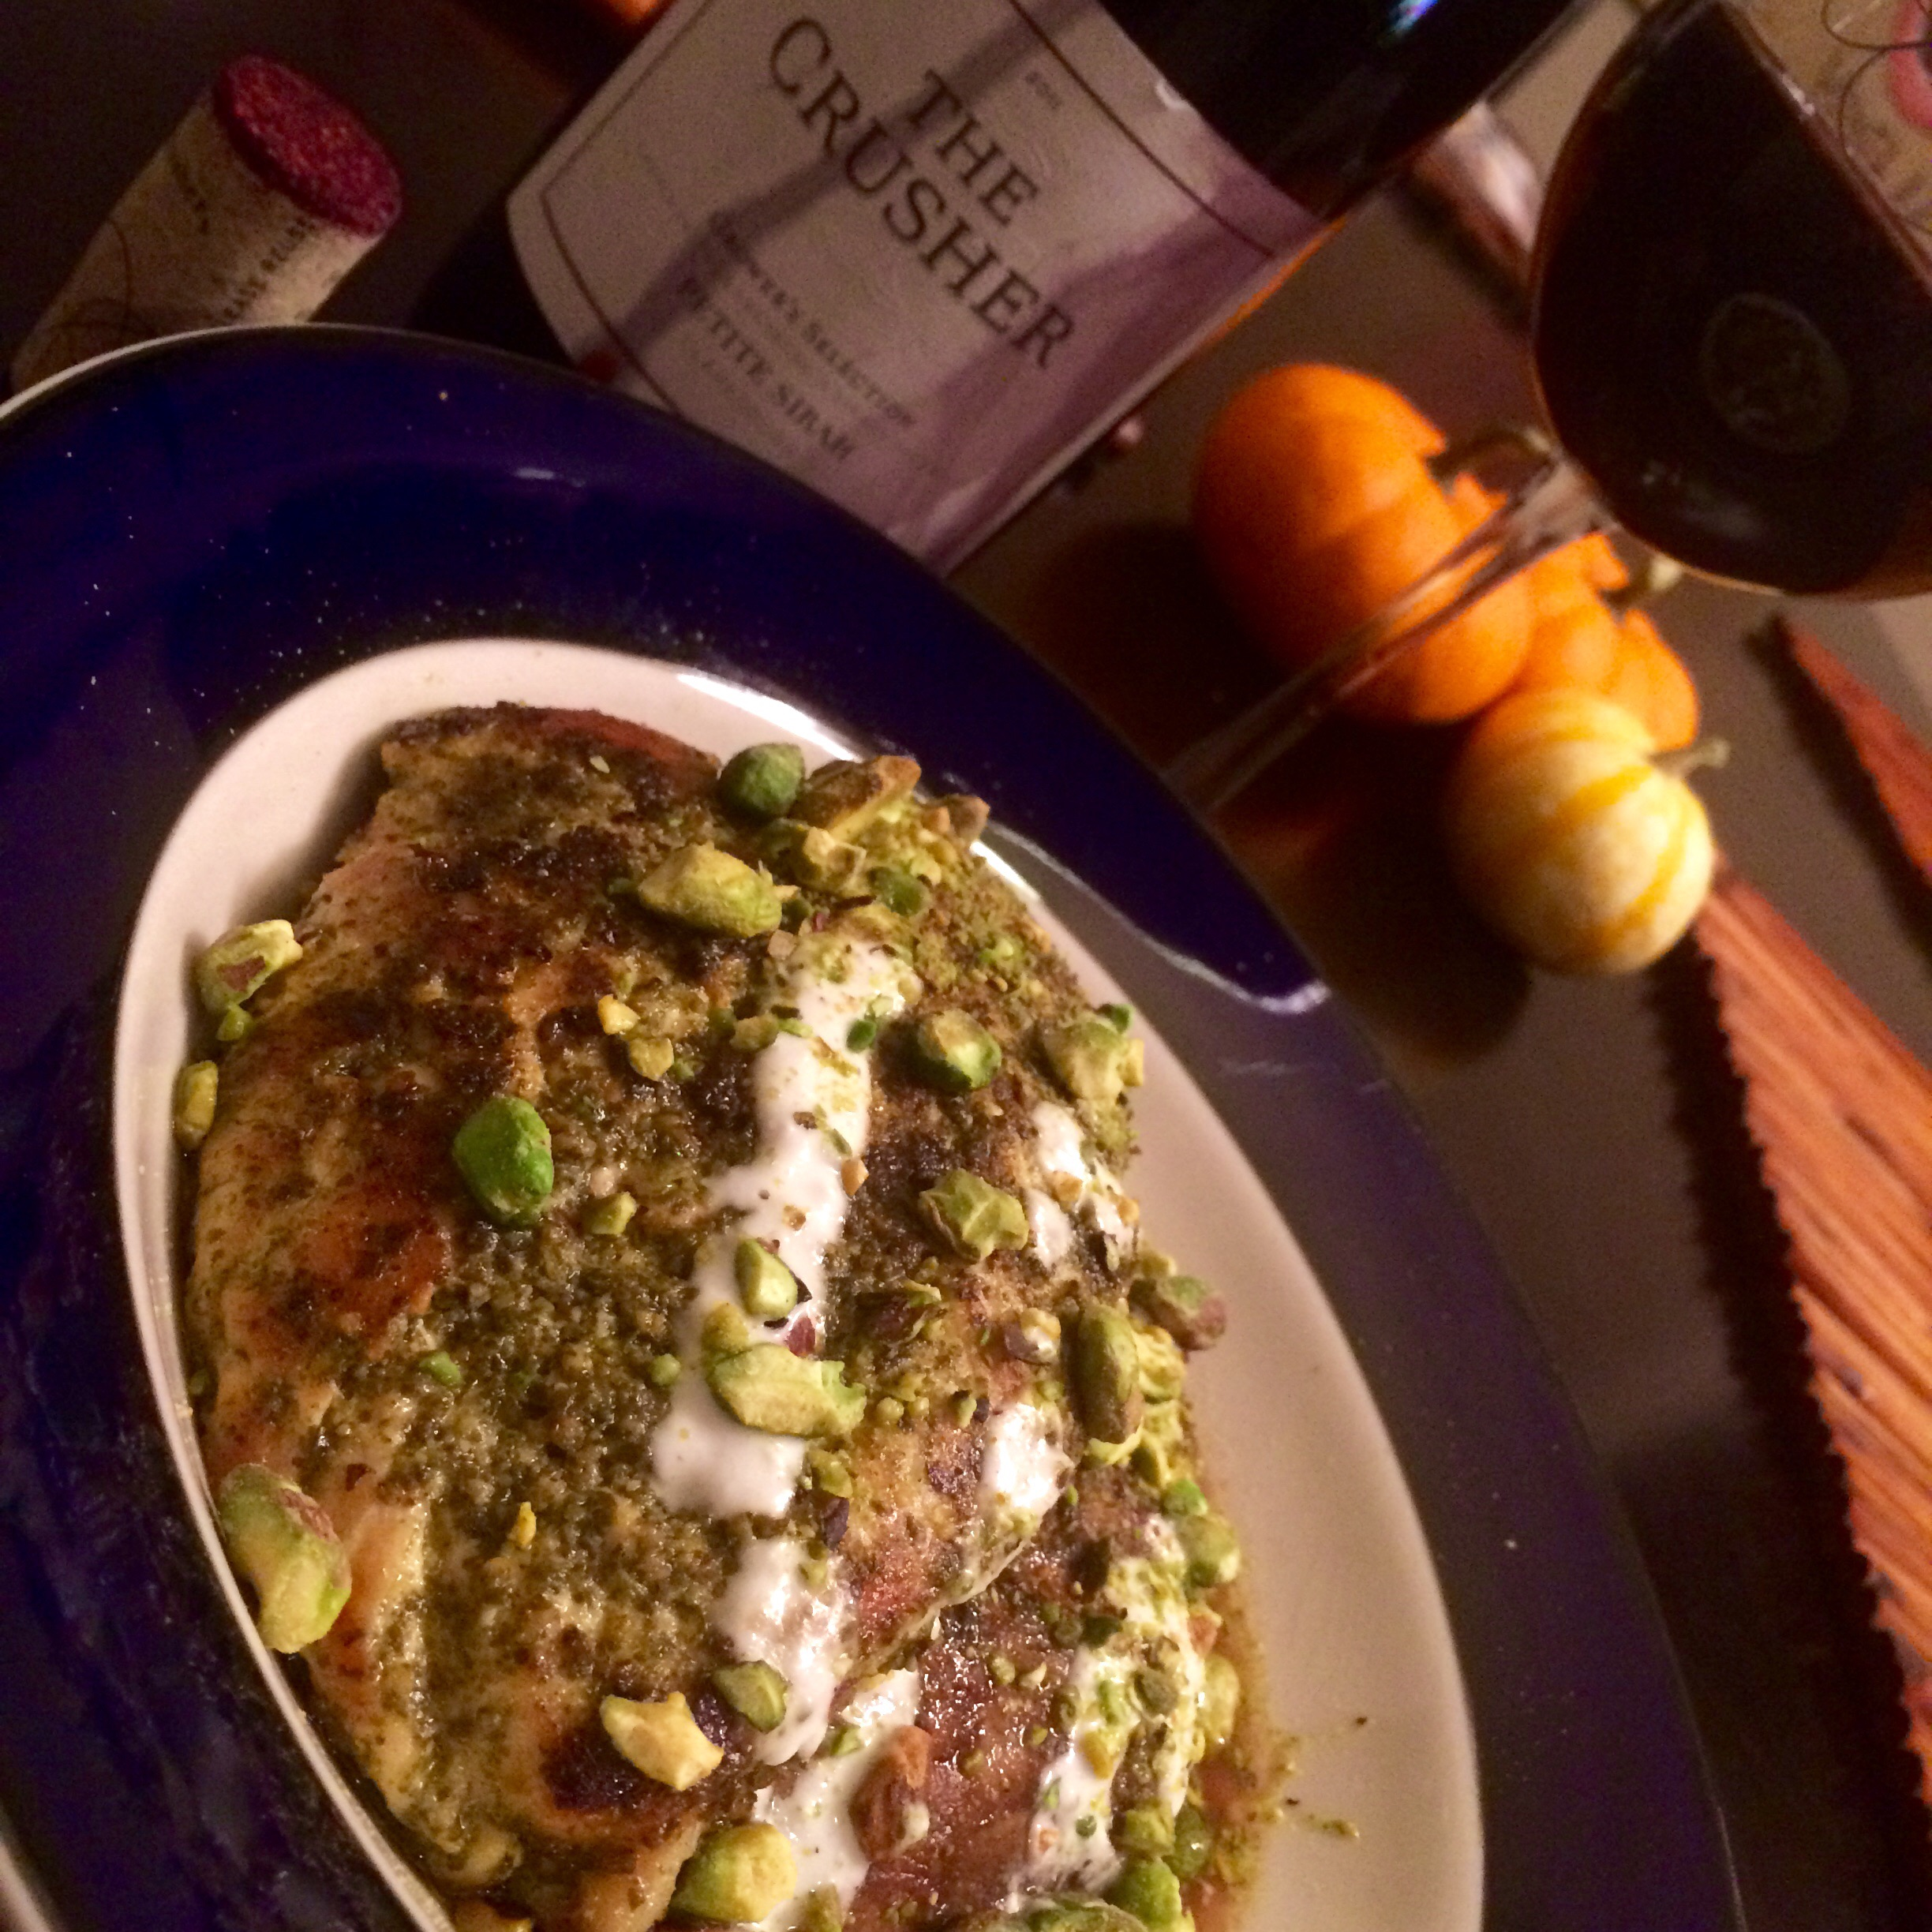 Pesto Chicken with Portobellos, Goat Cheese Drizzle and Toasted Pistachios